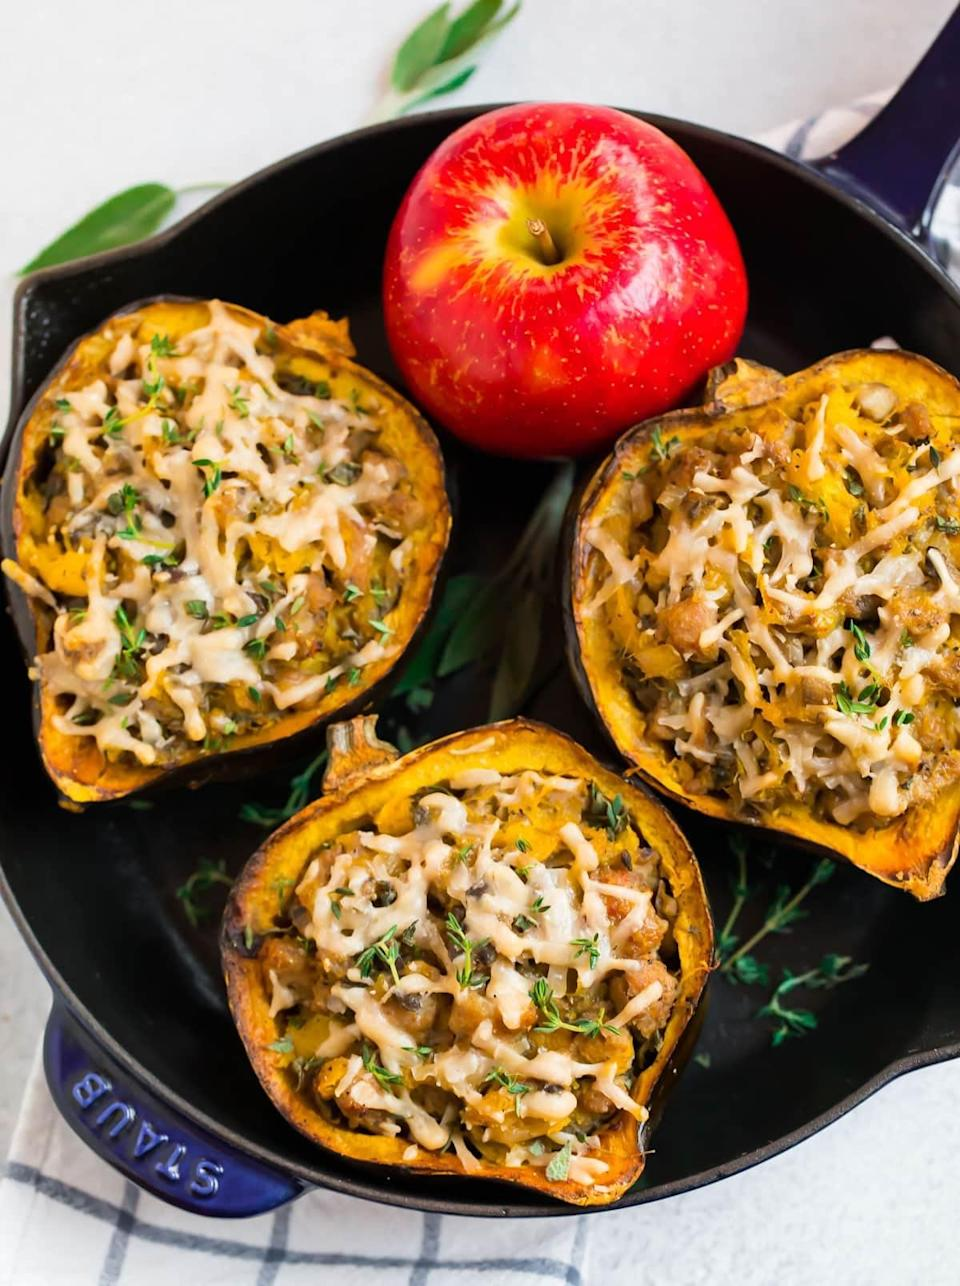 "<p>Stuffed with Italian sausage, apples, mushrooms, and spices, this acorn squash side dish will be the hit of dinner.</p> <p><strong>Get the recipe:</strong> <a href=""http://www.wellplated.com/sausage-stuffed-acorn-squash/"" class=""link rapid-noclick-resp"" rel=""nofollow noopener"" target=""_blank"" data-ylk=""slk:sausage stuffed acorn squash"">sausage stuffed acorn squash</a></p>"